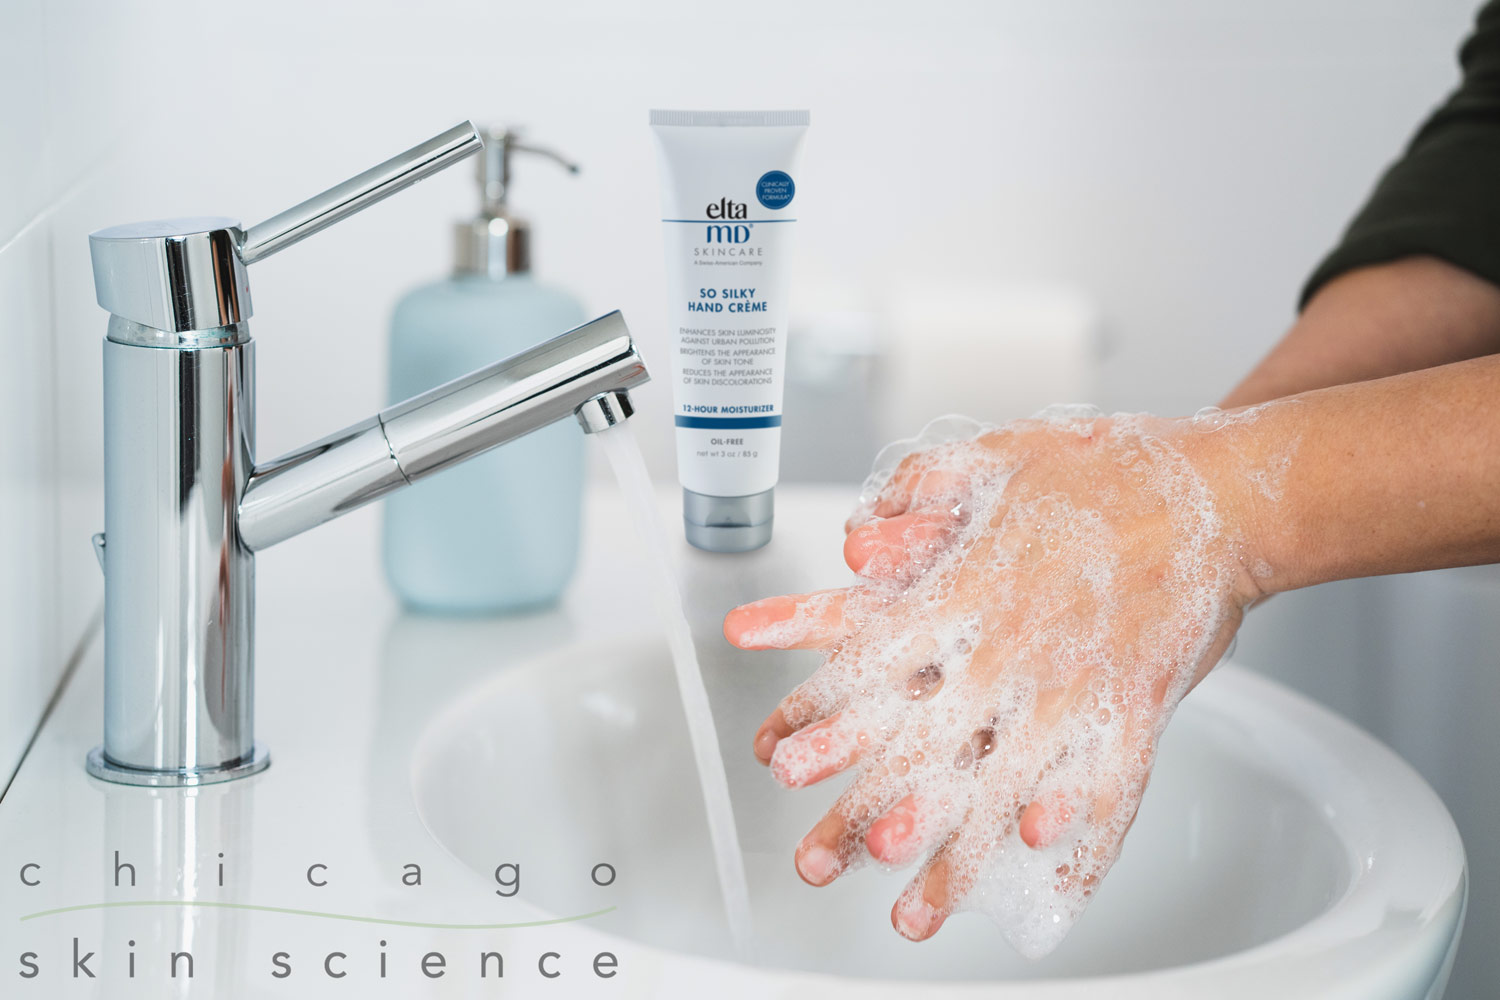 The Best Moisturizers For Hands Dry From Coronavirus Handwashing